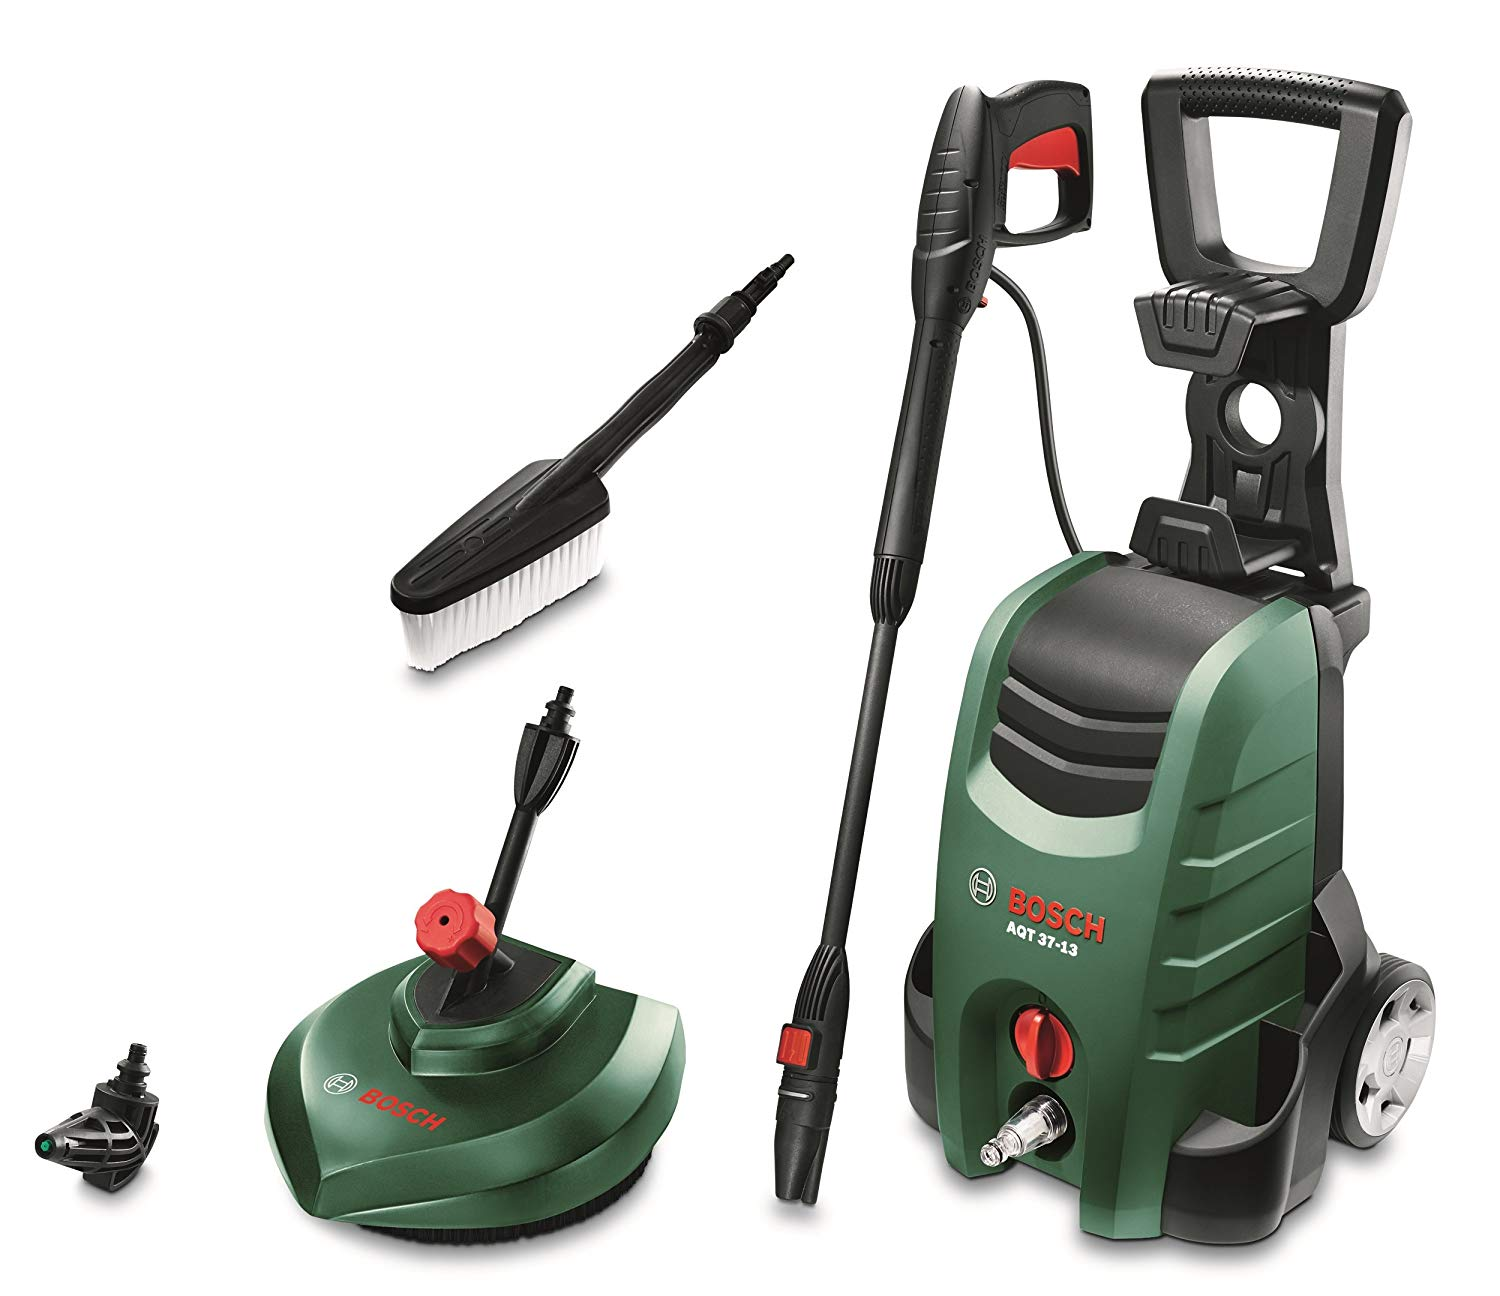 Bosch Home and Car AQT 37-13 Plus cleaner Pressure cleaner